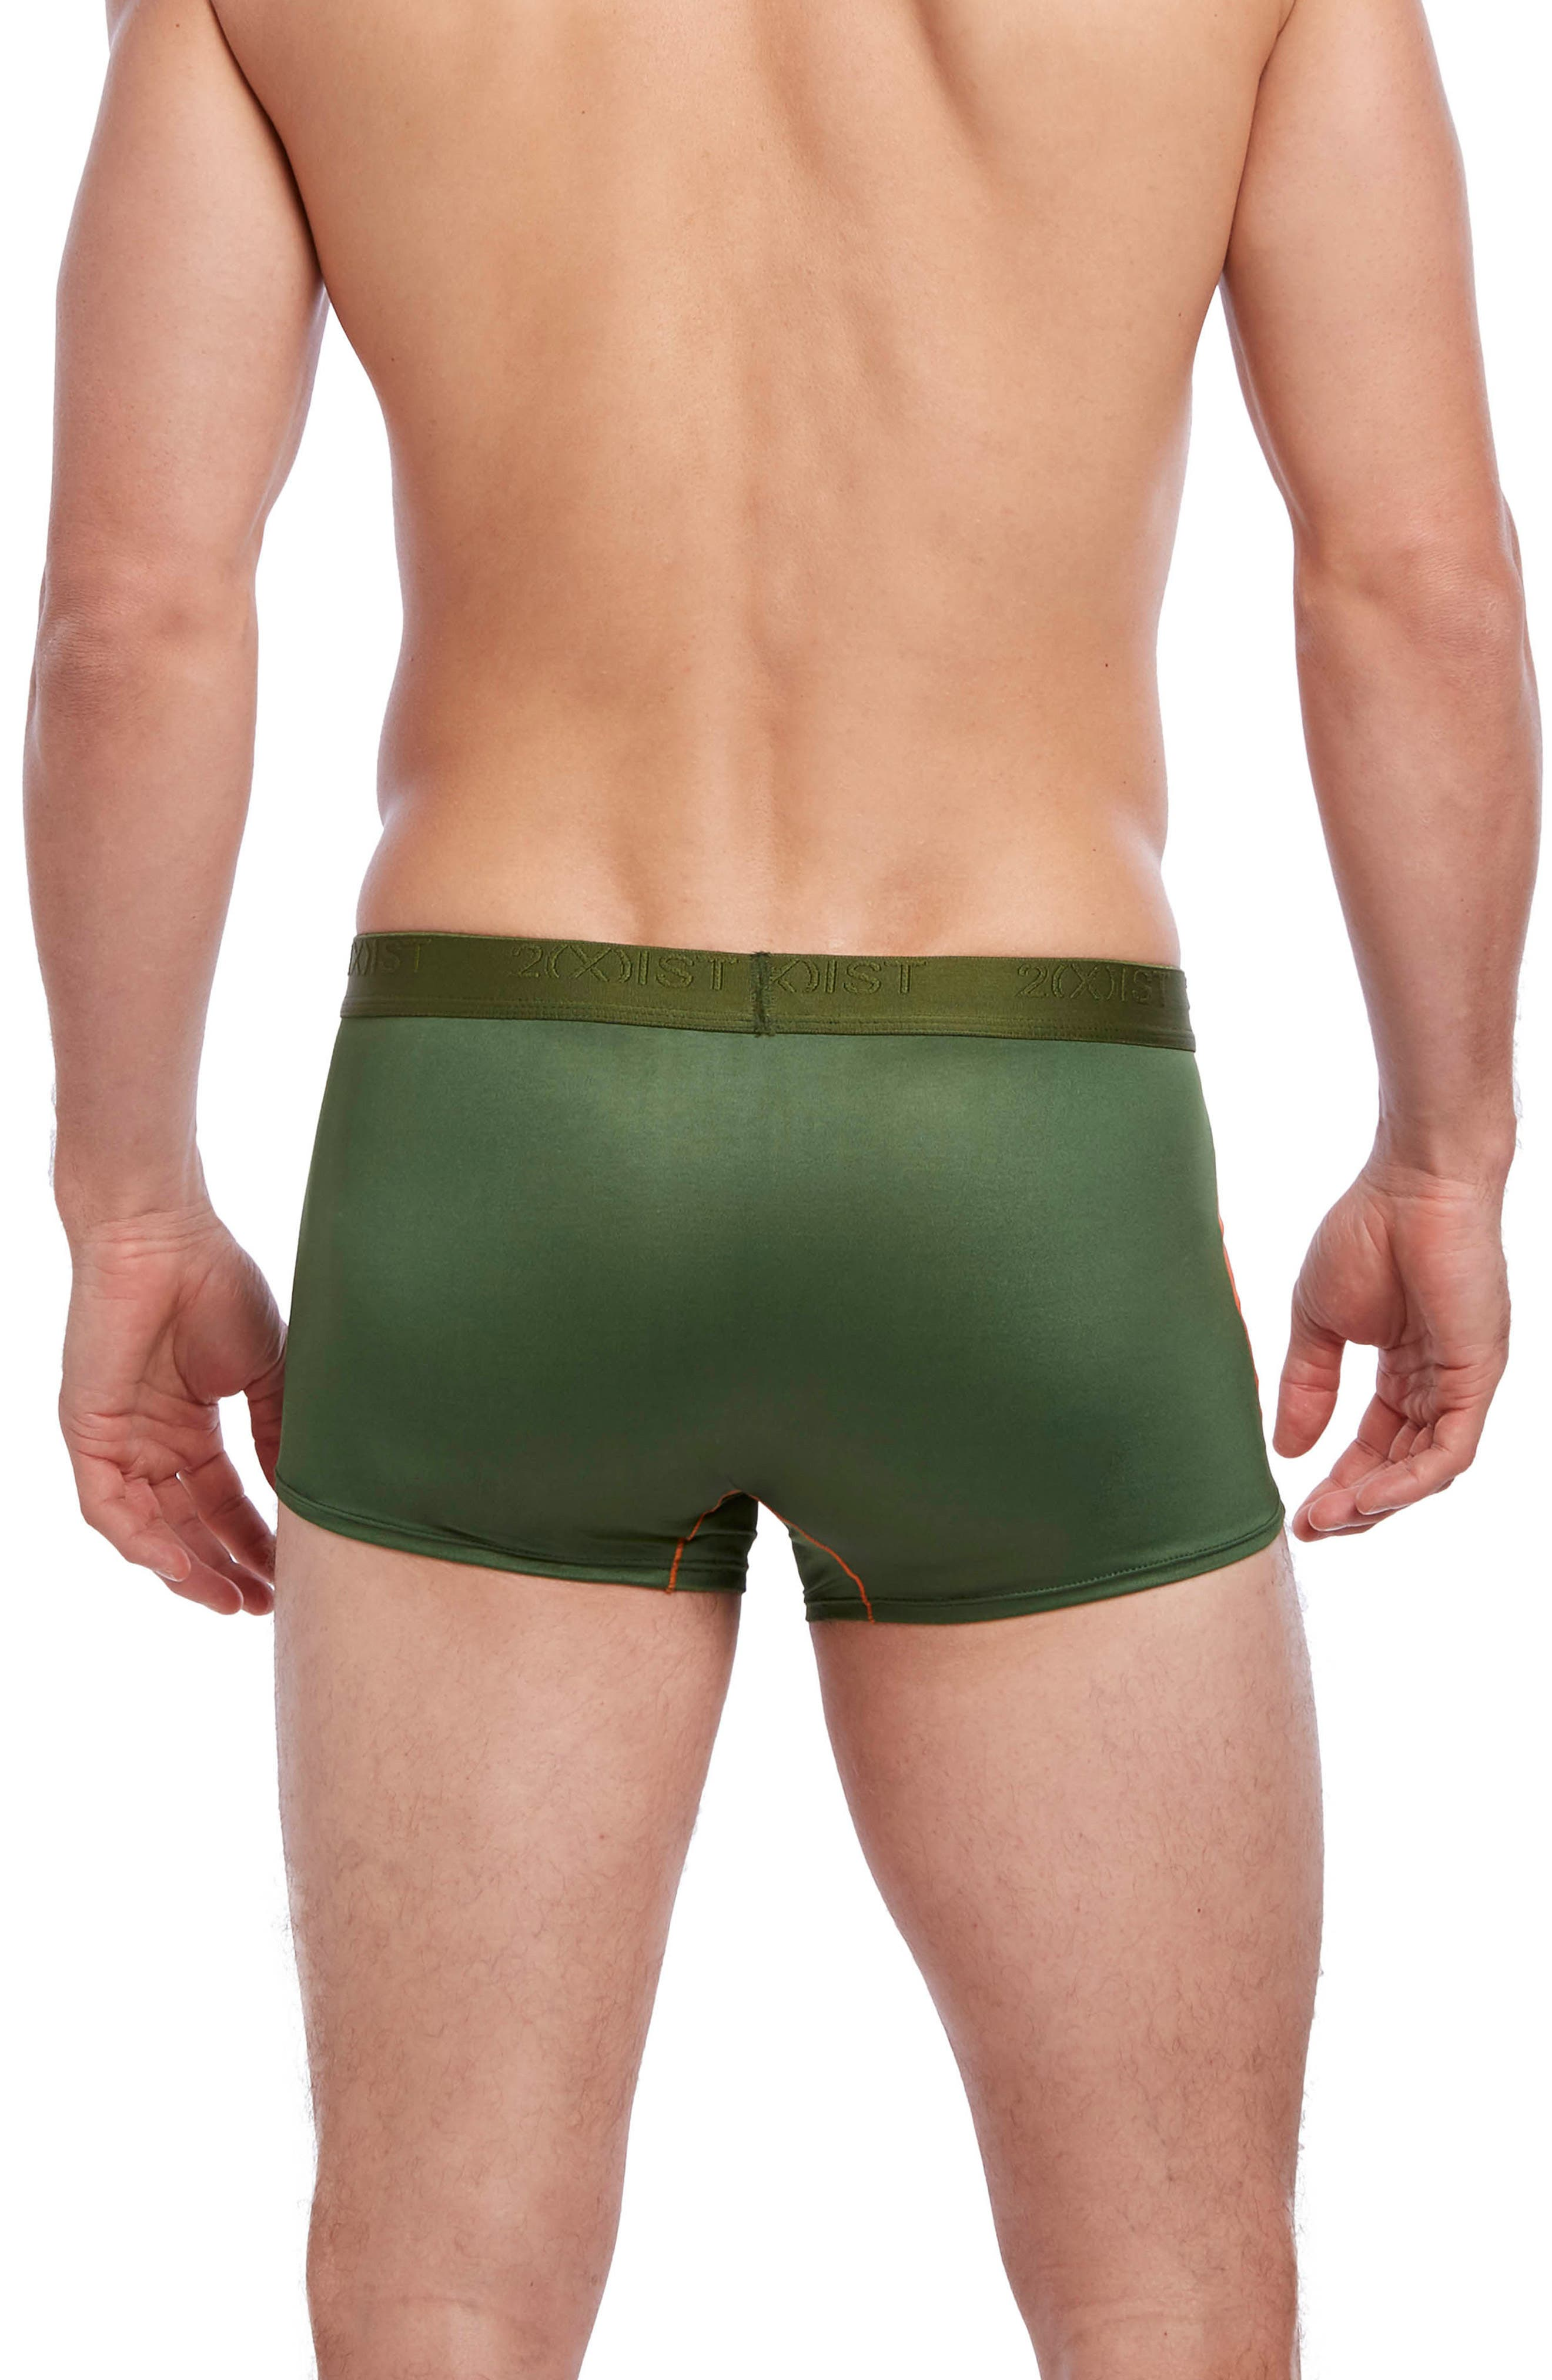 Military No-Show Trunks,                             Alternate thumbnail 2, color,                             Chive/ Golden Poppy